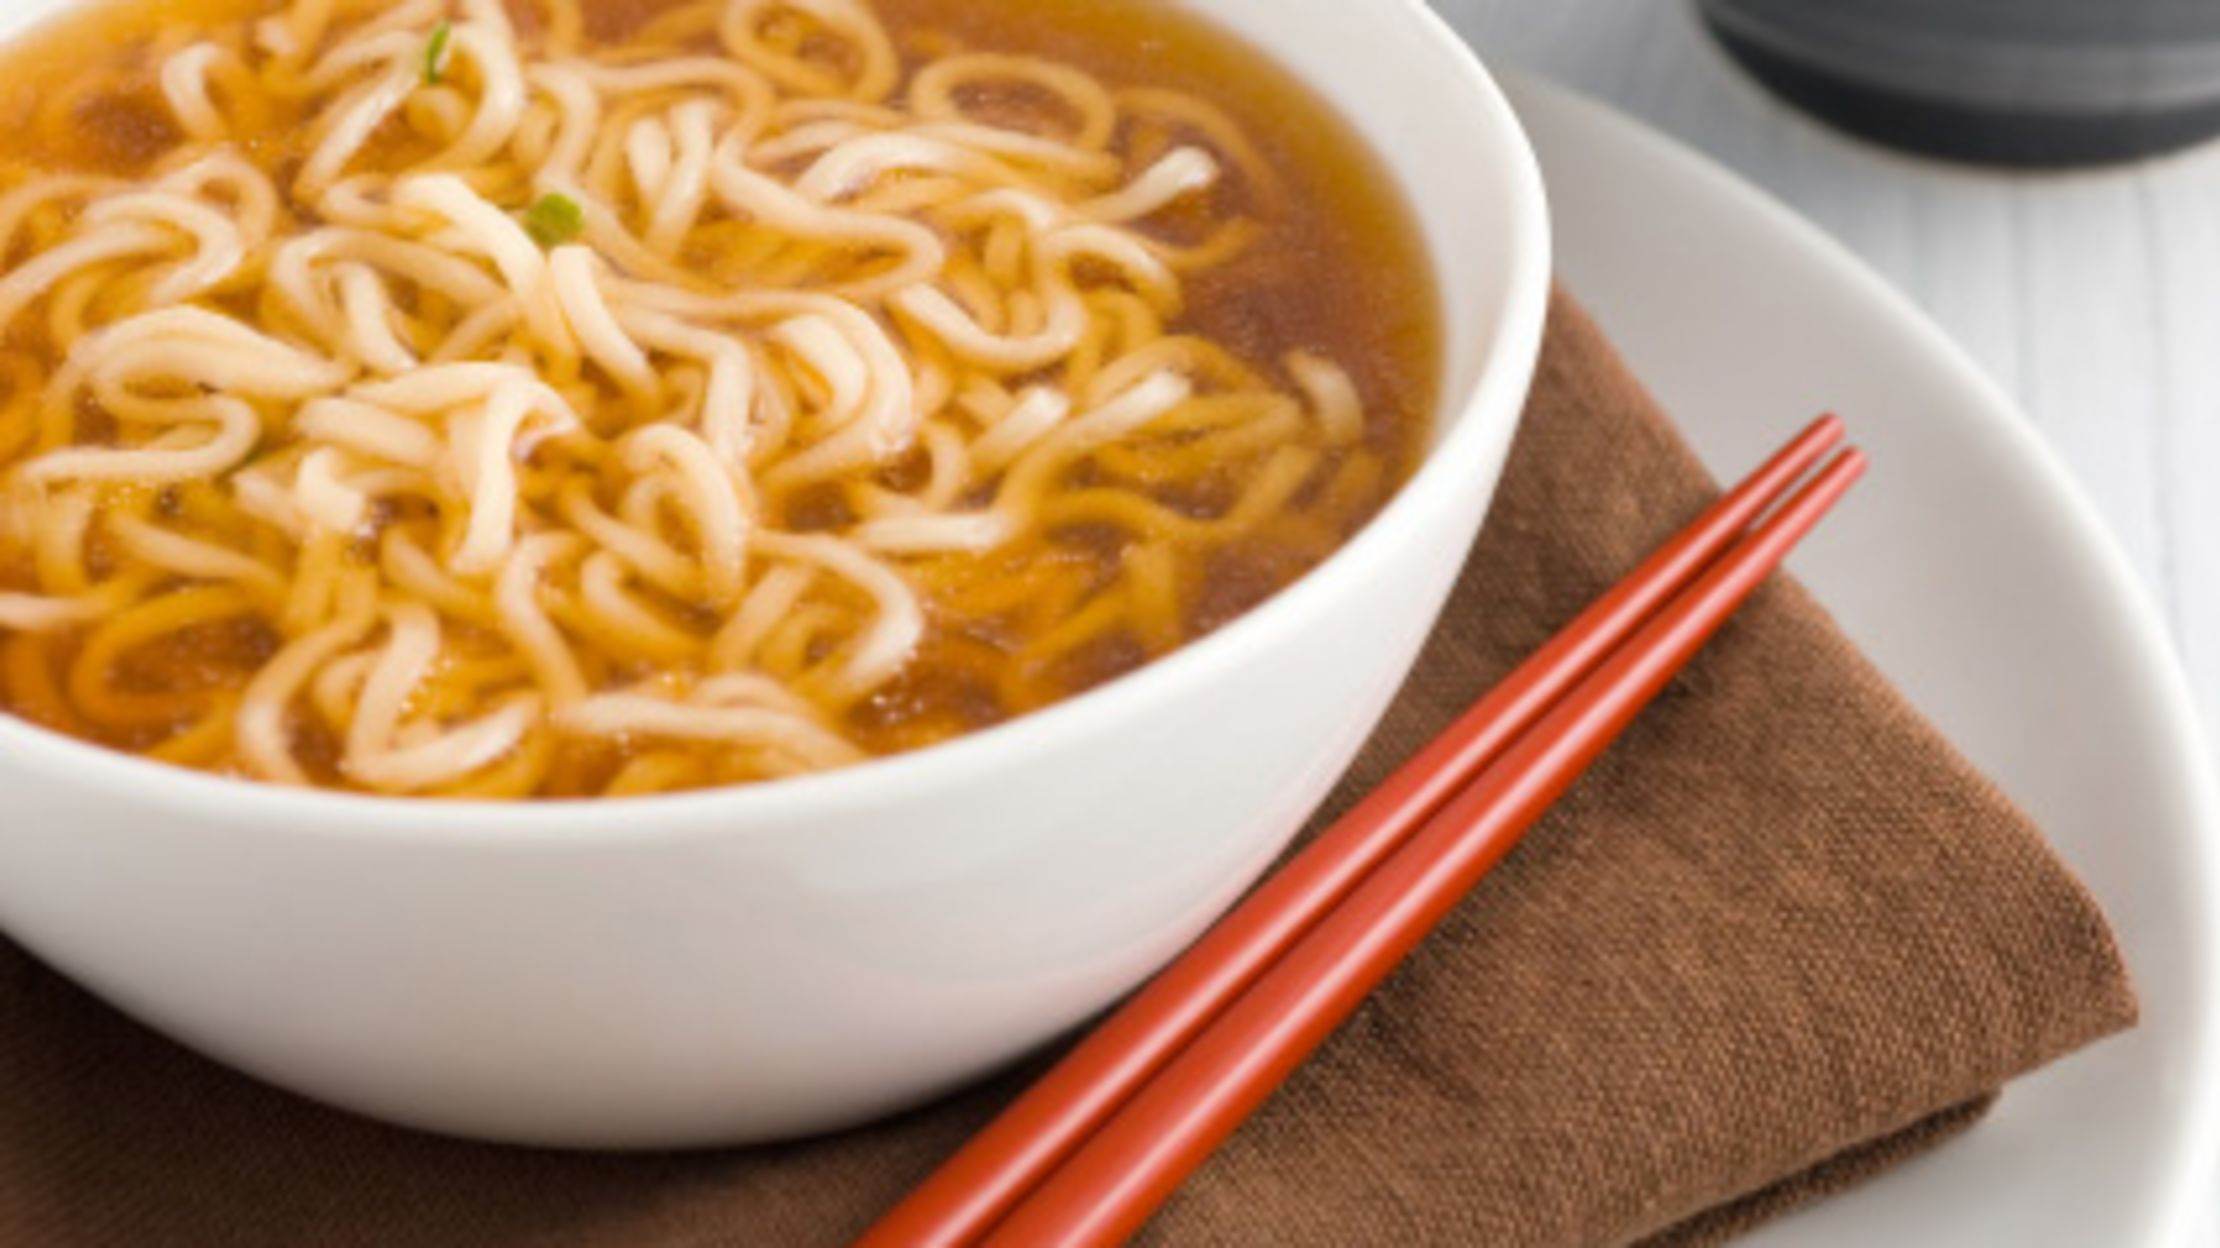 Discomfort Food: The Strange and Twisted History of Ramen Noodles